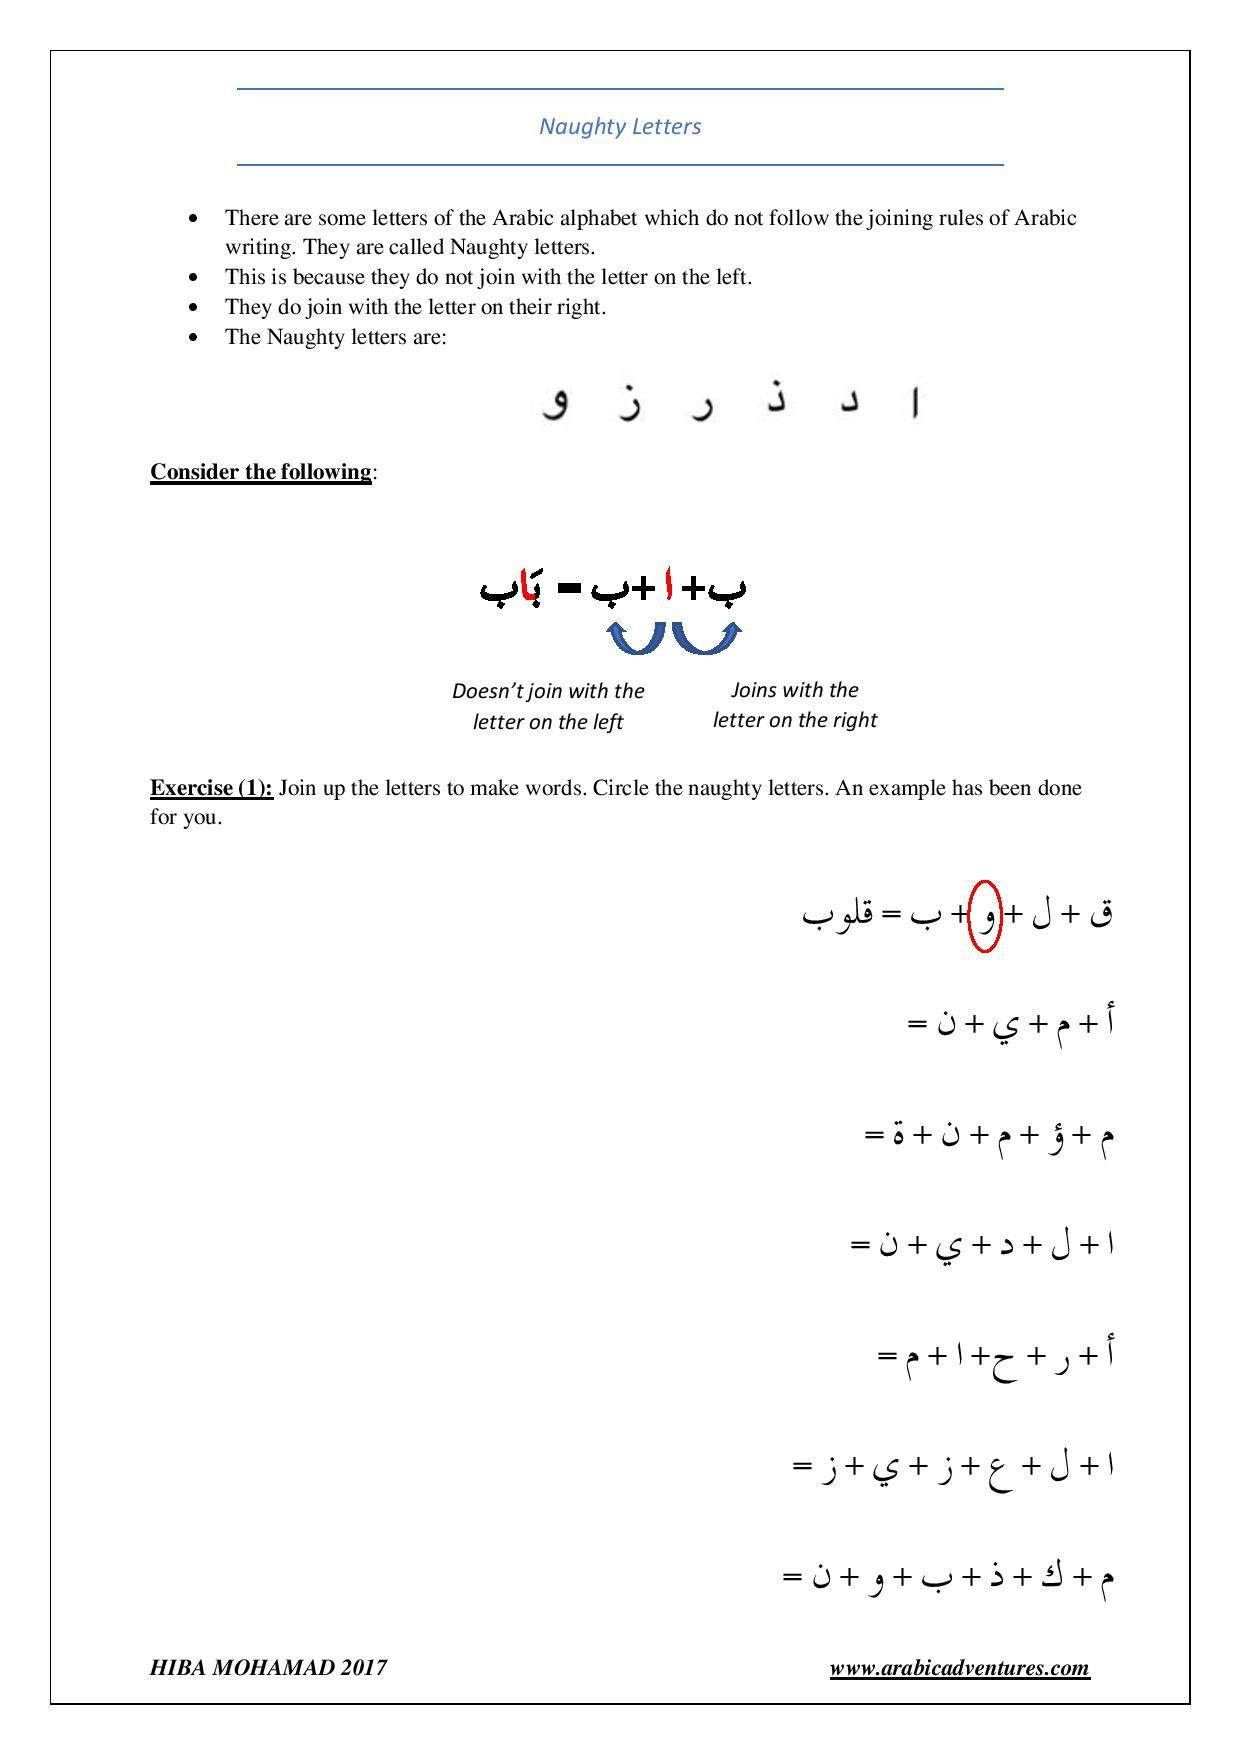 Naughty Letters In Arabic Worksheet Abicadventures